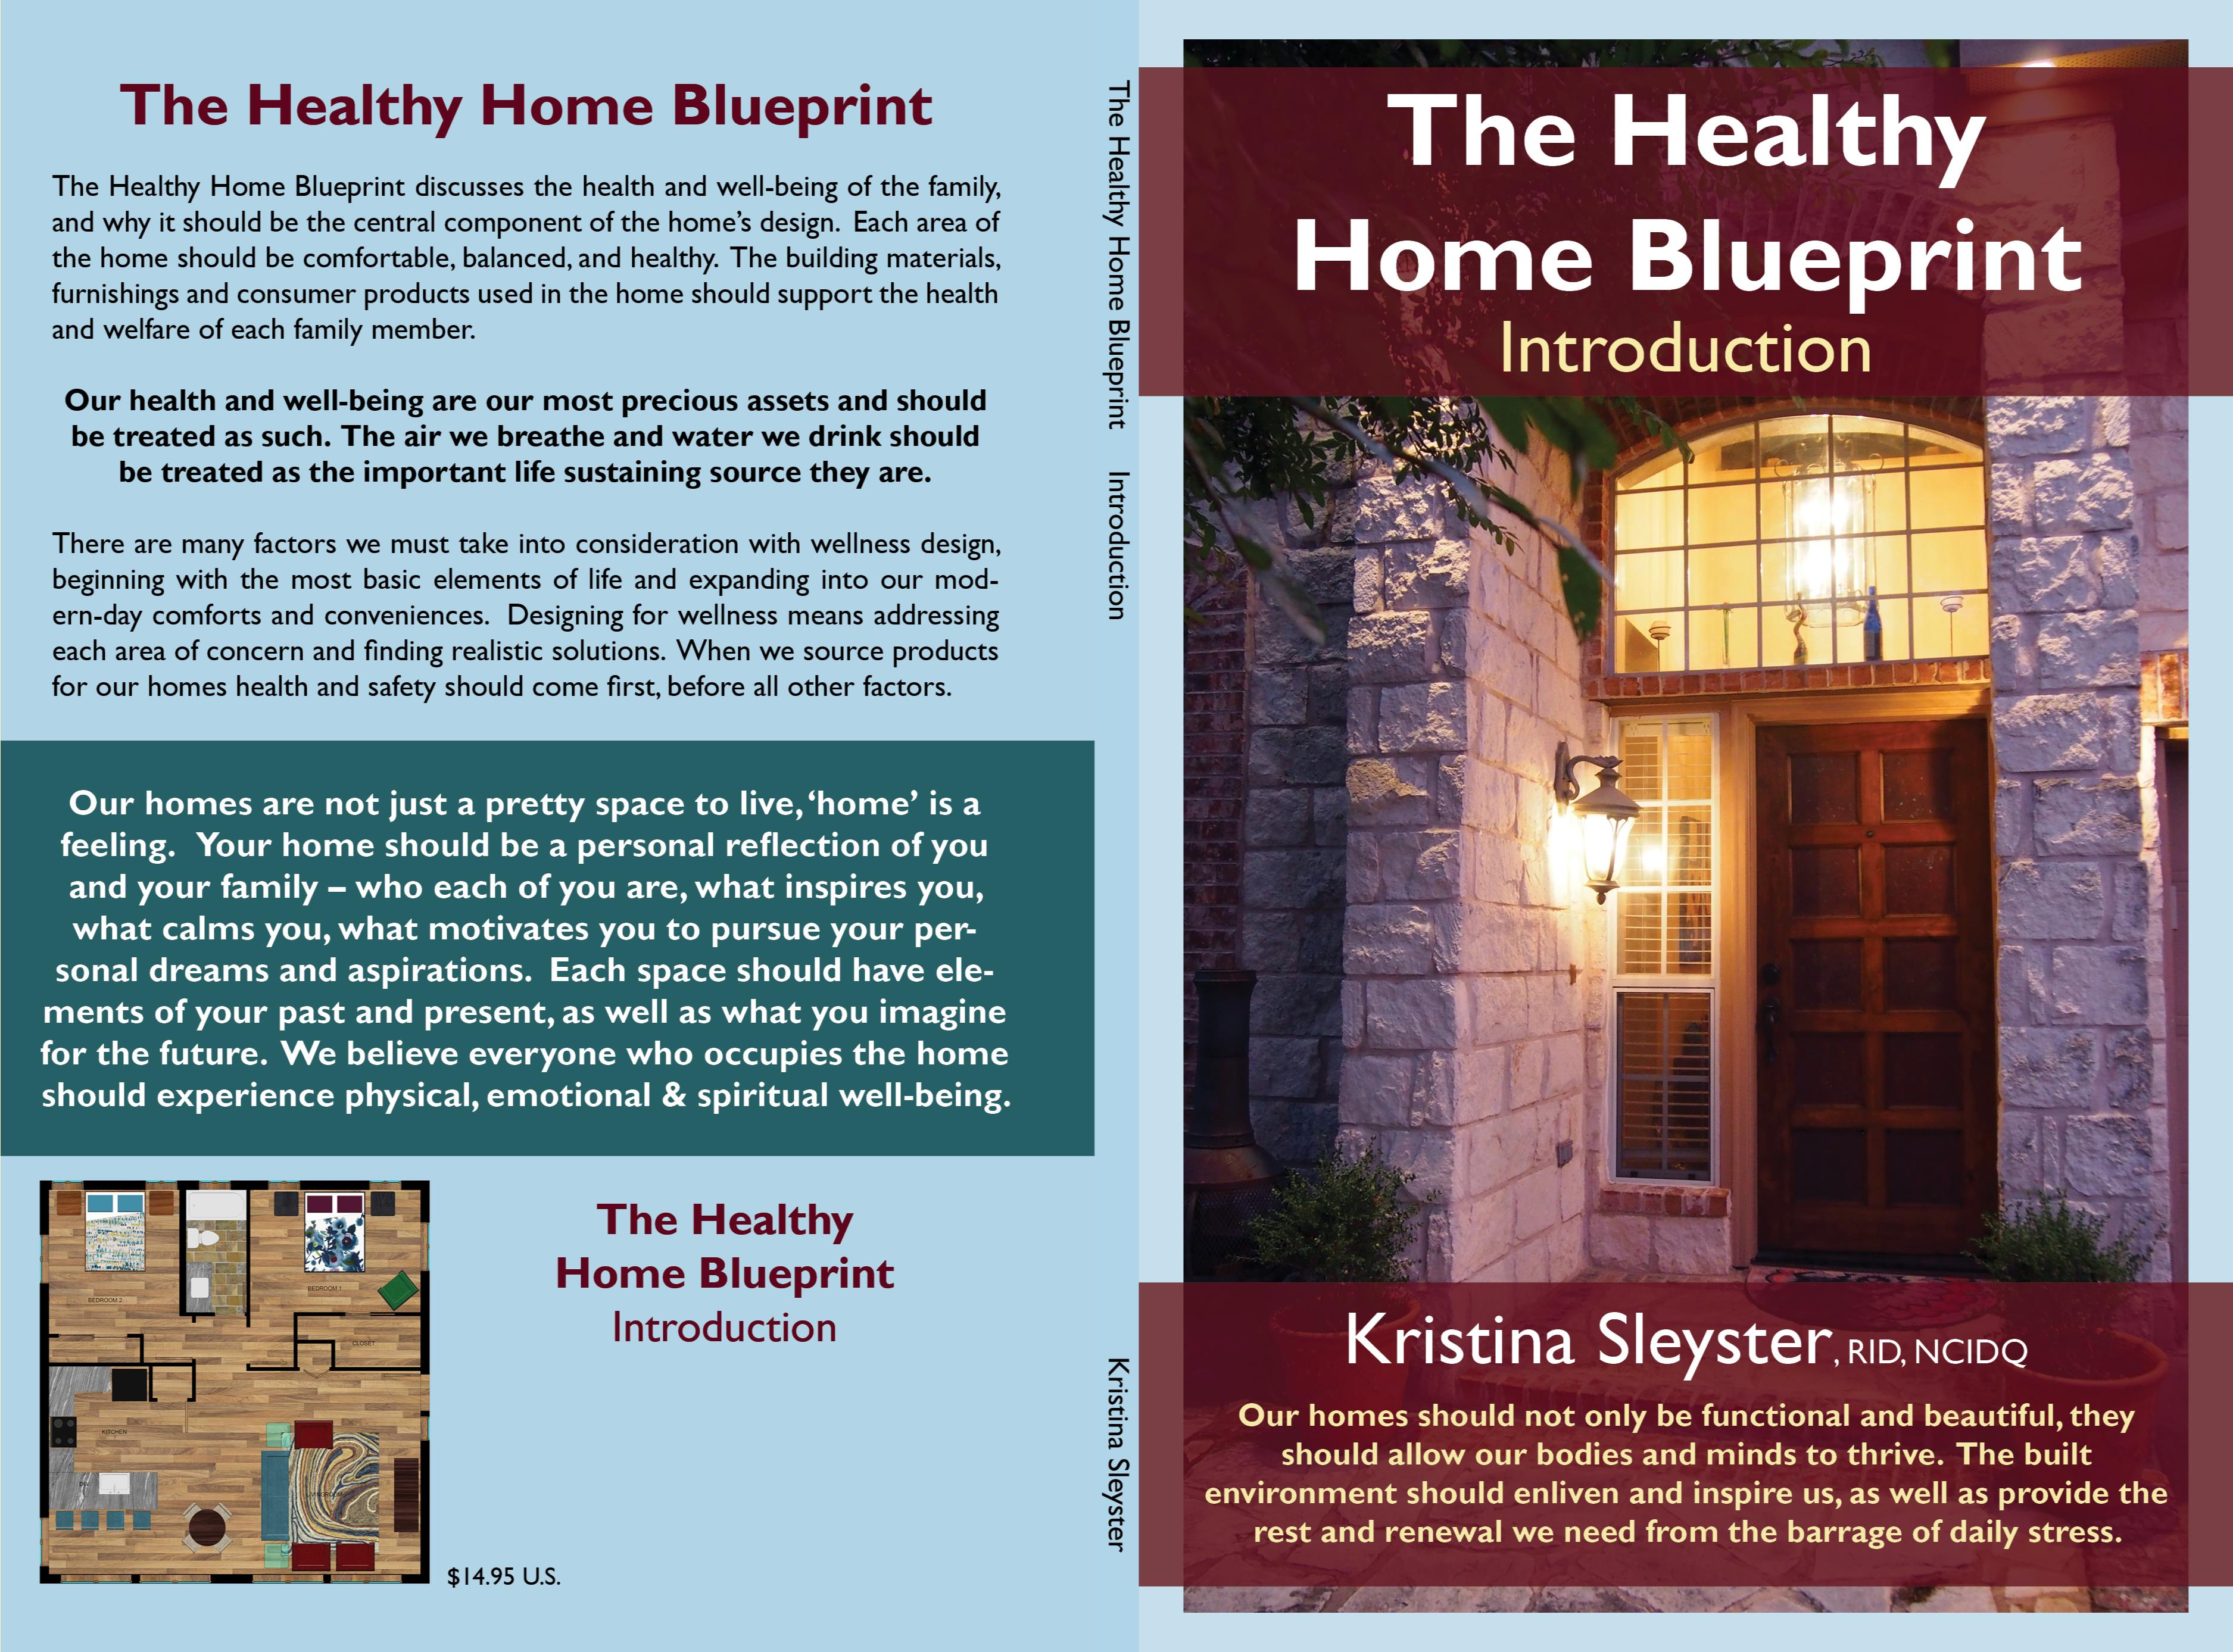 The Healthy Home Blueprint cover image